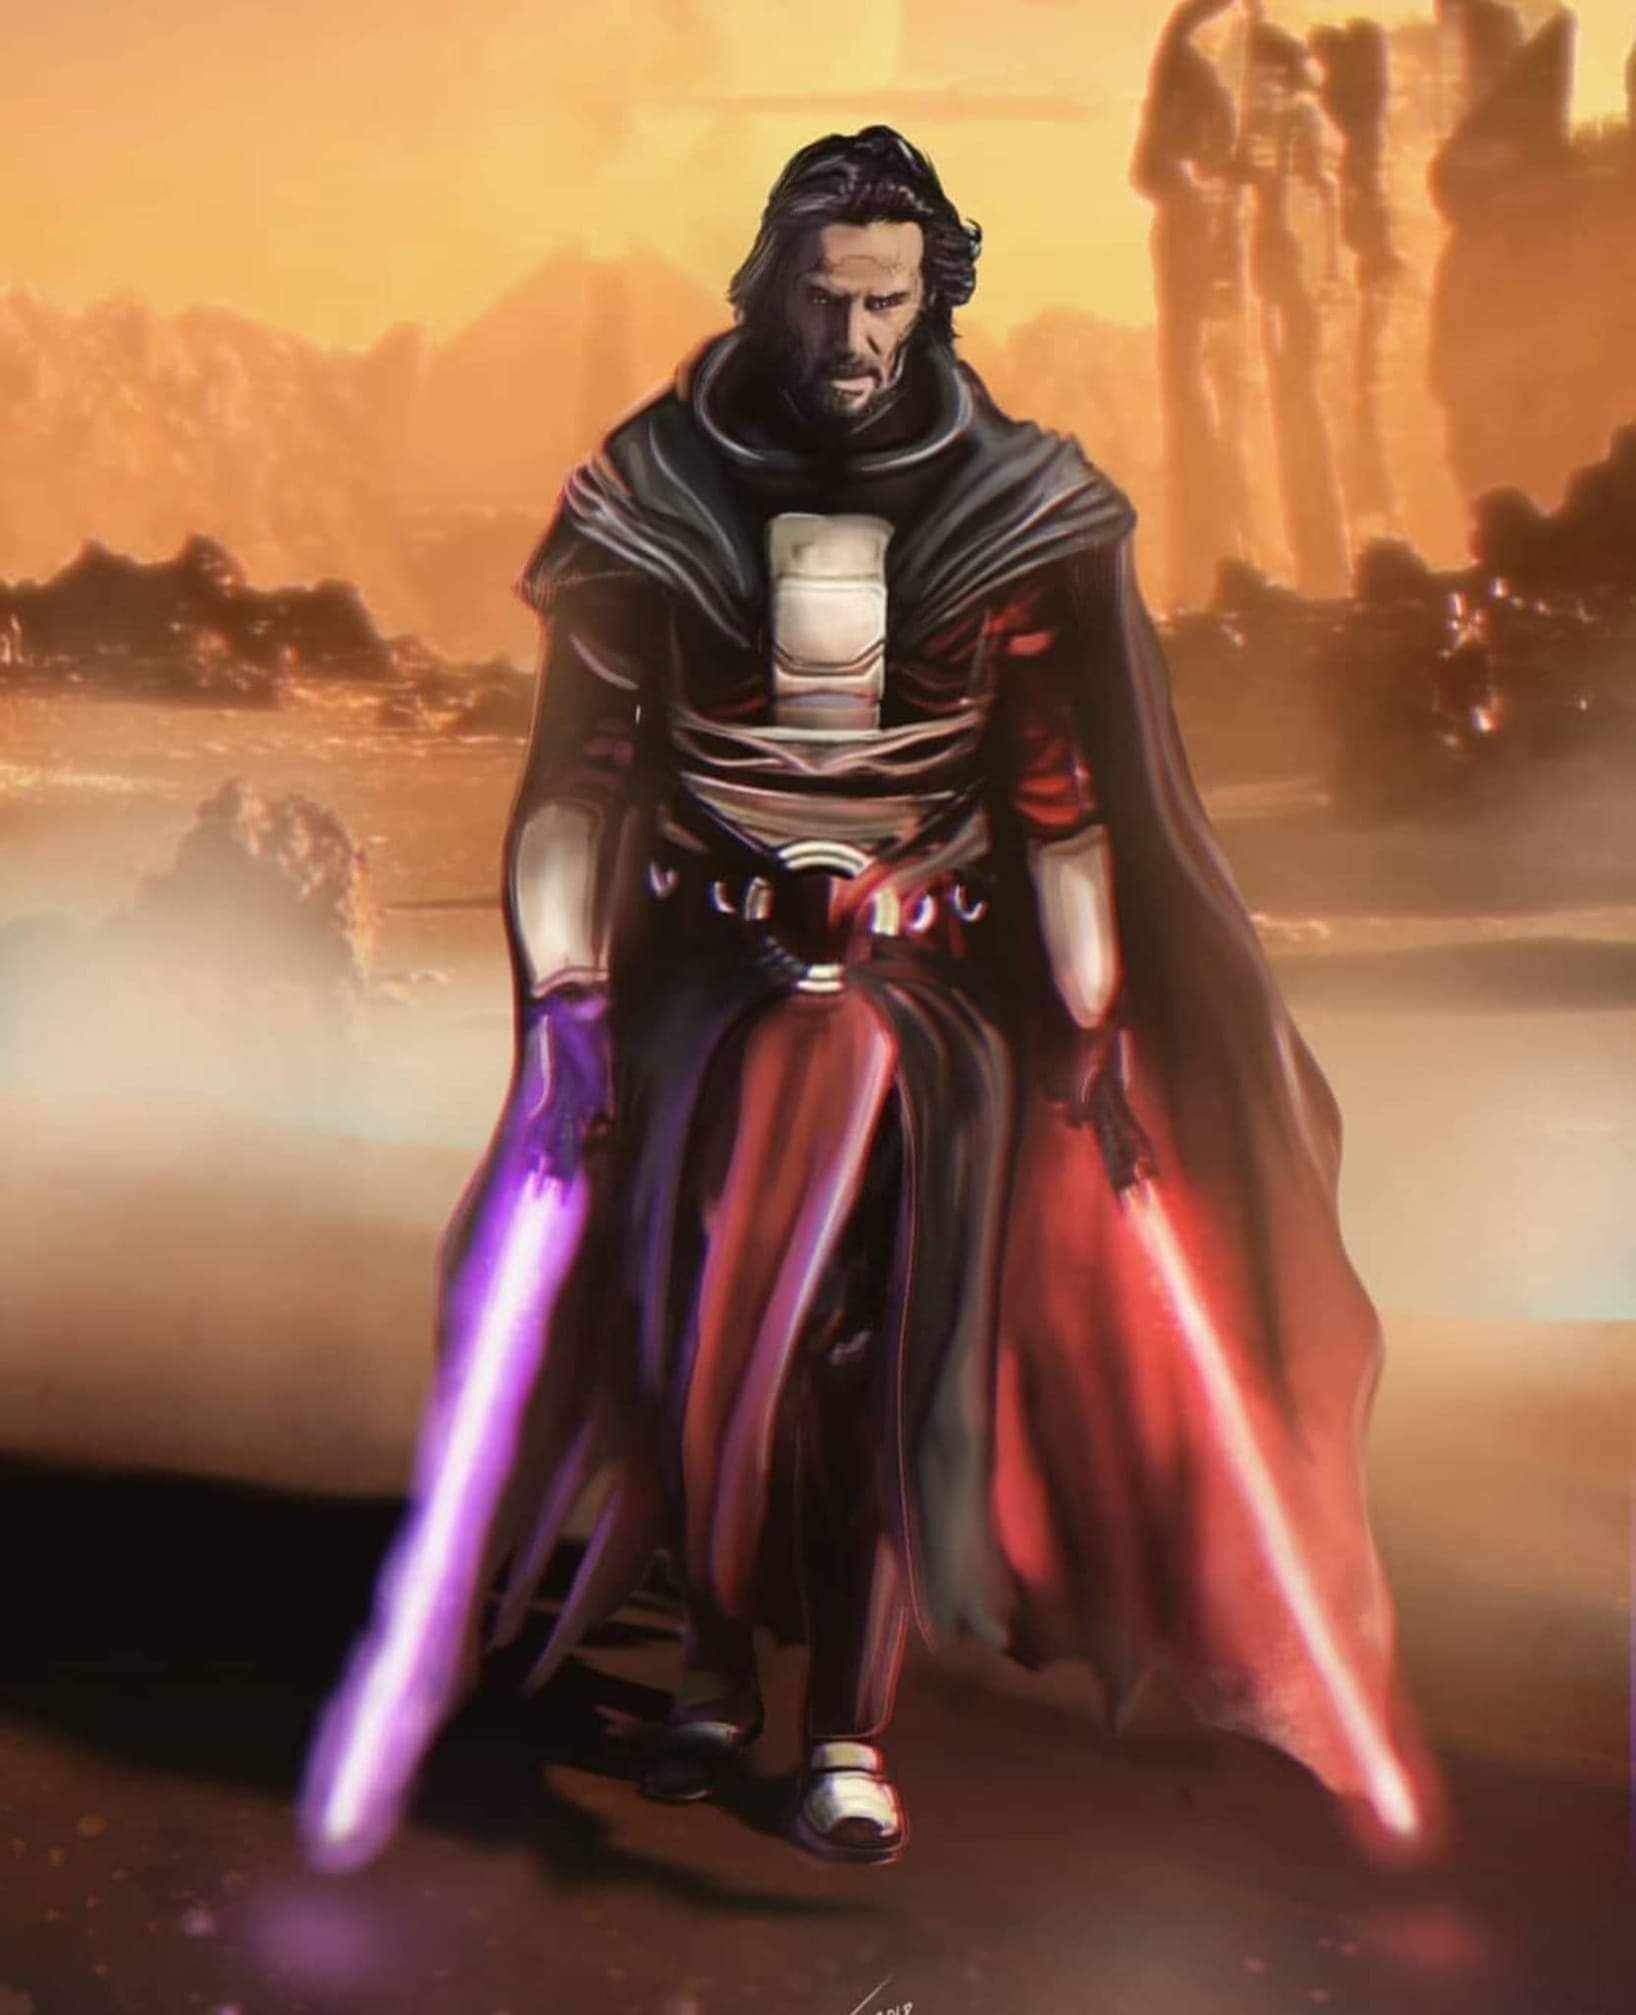 """KW😷 on Twitter: """"only Keanu Reeves can save the #StarWars franchise now  but I guess Disney will find a new way to ruin it instead  #RiseOfTheSkywalker 👎… https://t.co/wS8KFsN3lh"""""""